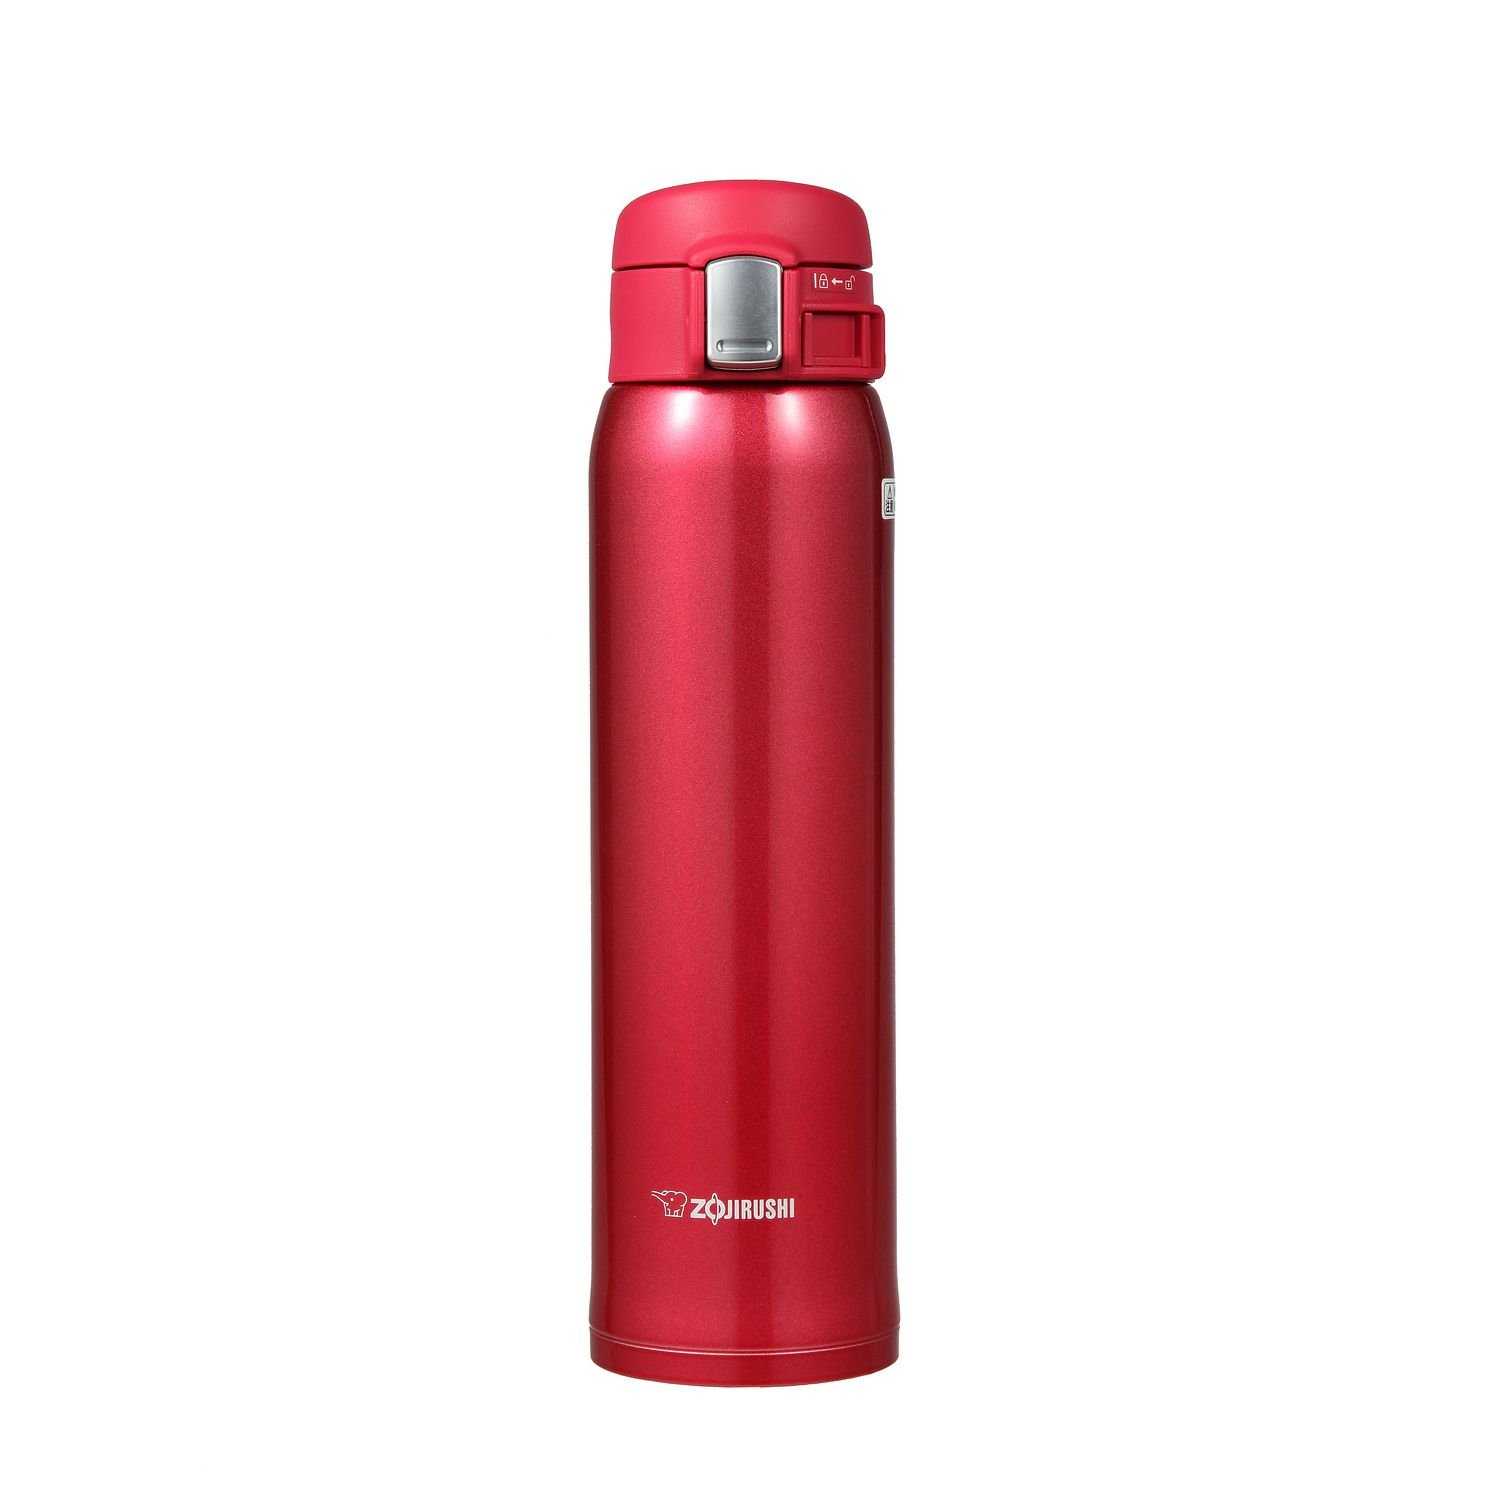 $37.10 (was $56) Zojirushi SM-SA60-RW Stainless Steel Mug, 20-Ounce, Clear Red